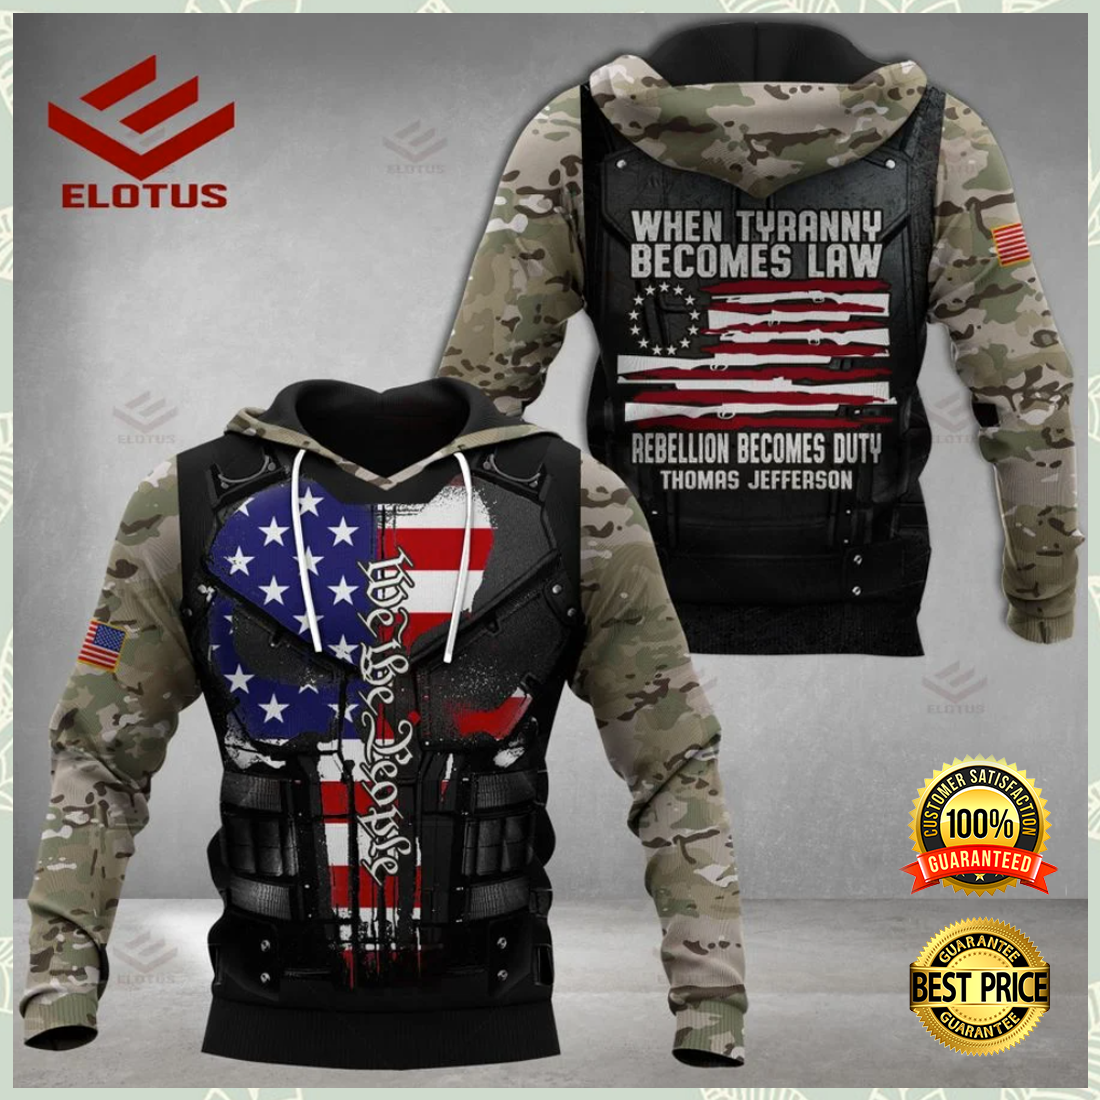 PERSONALIZED WHEN TYRANNY BECOMES LAW REBELLION BECOMES DUTY ALL OVER PRINTED 3D HOODIE 5